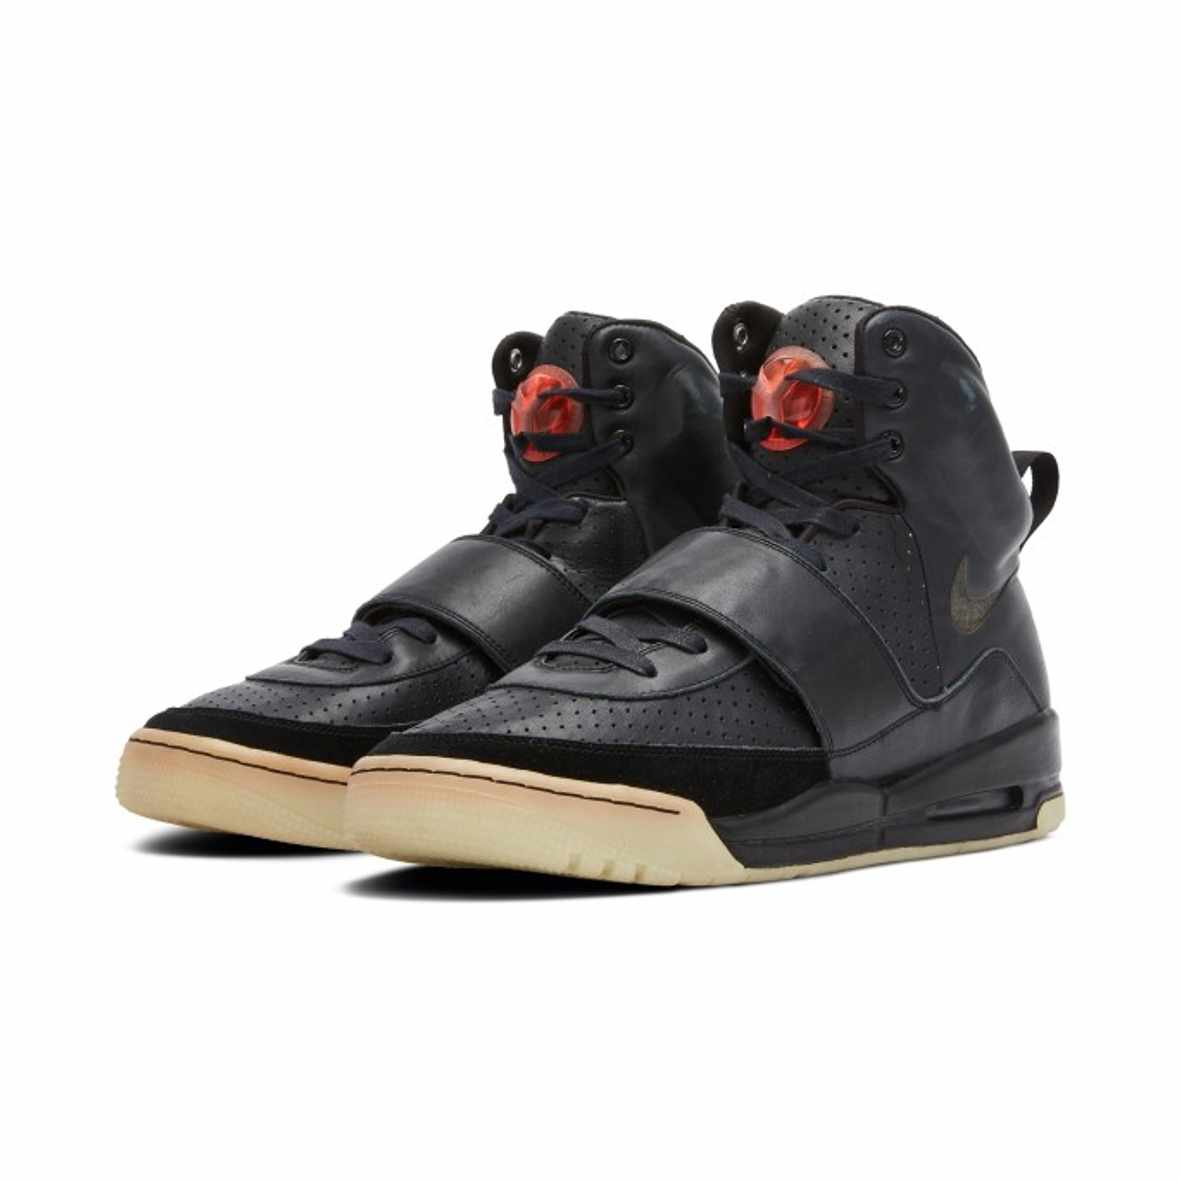 Picture: Kanye West's Air Yeezy sneakers from his 2008 Grammys performance, Sotheby's